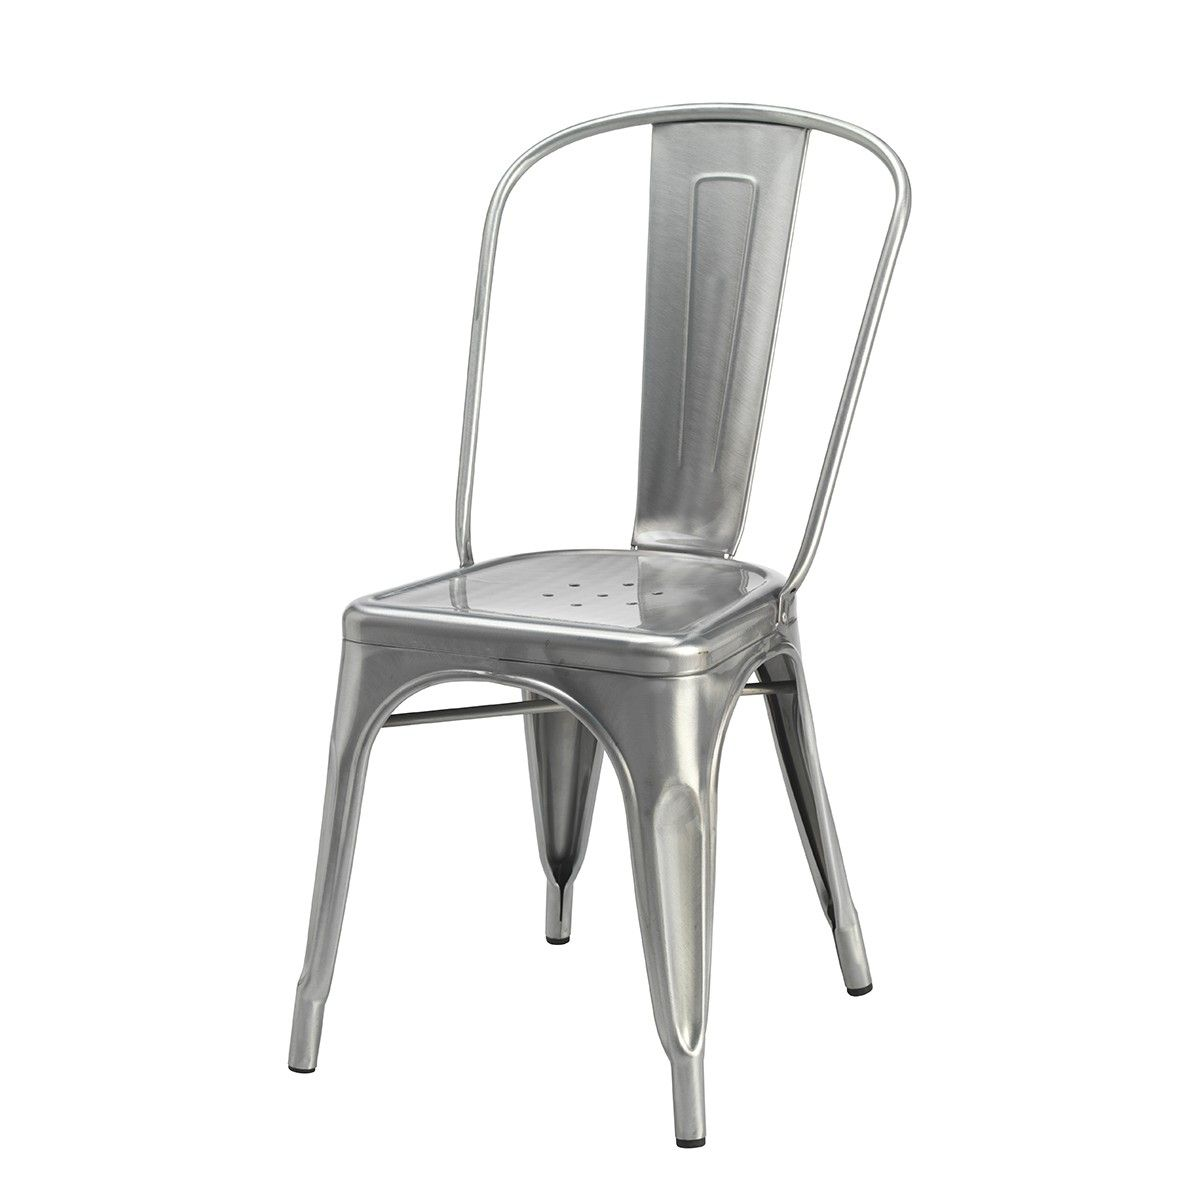 Charmant Silver Tolix Chair